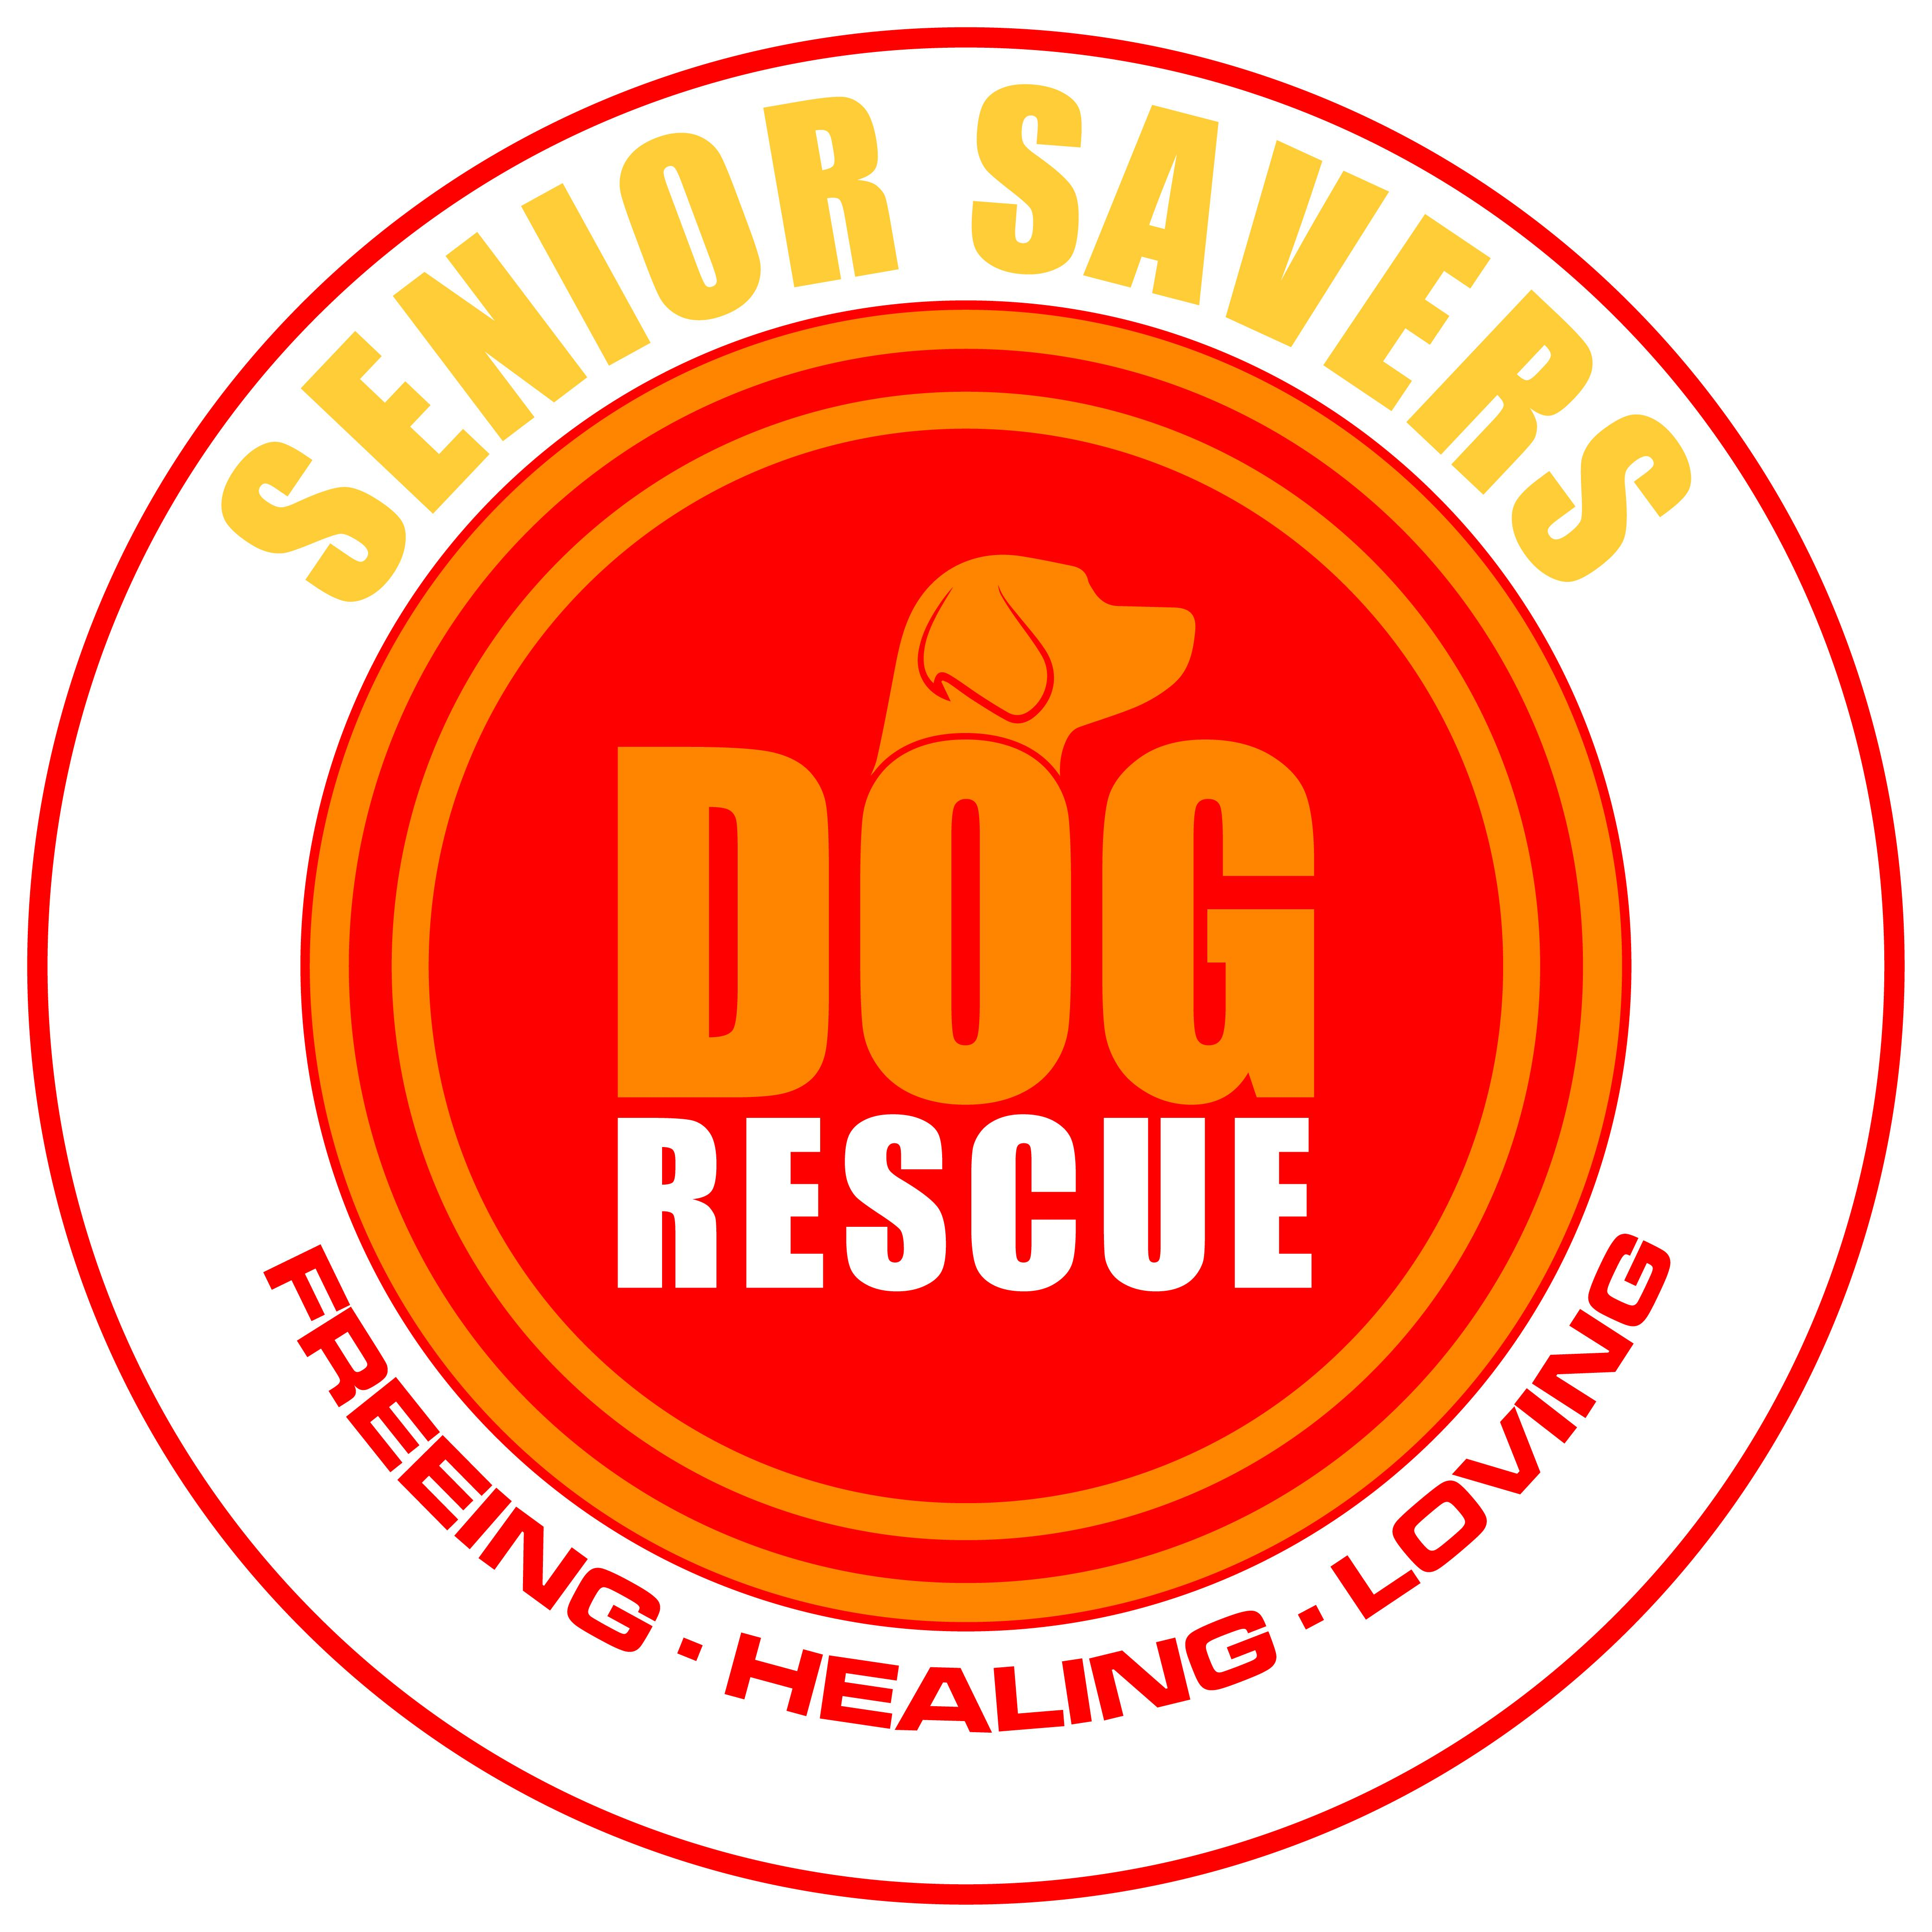 Senior Savers Dog Rescue